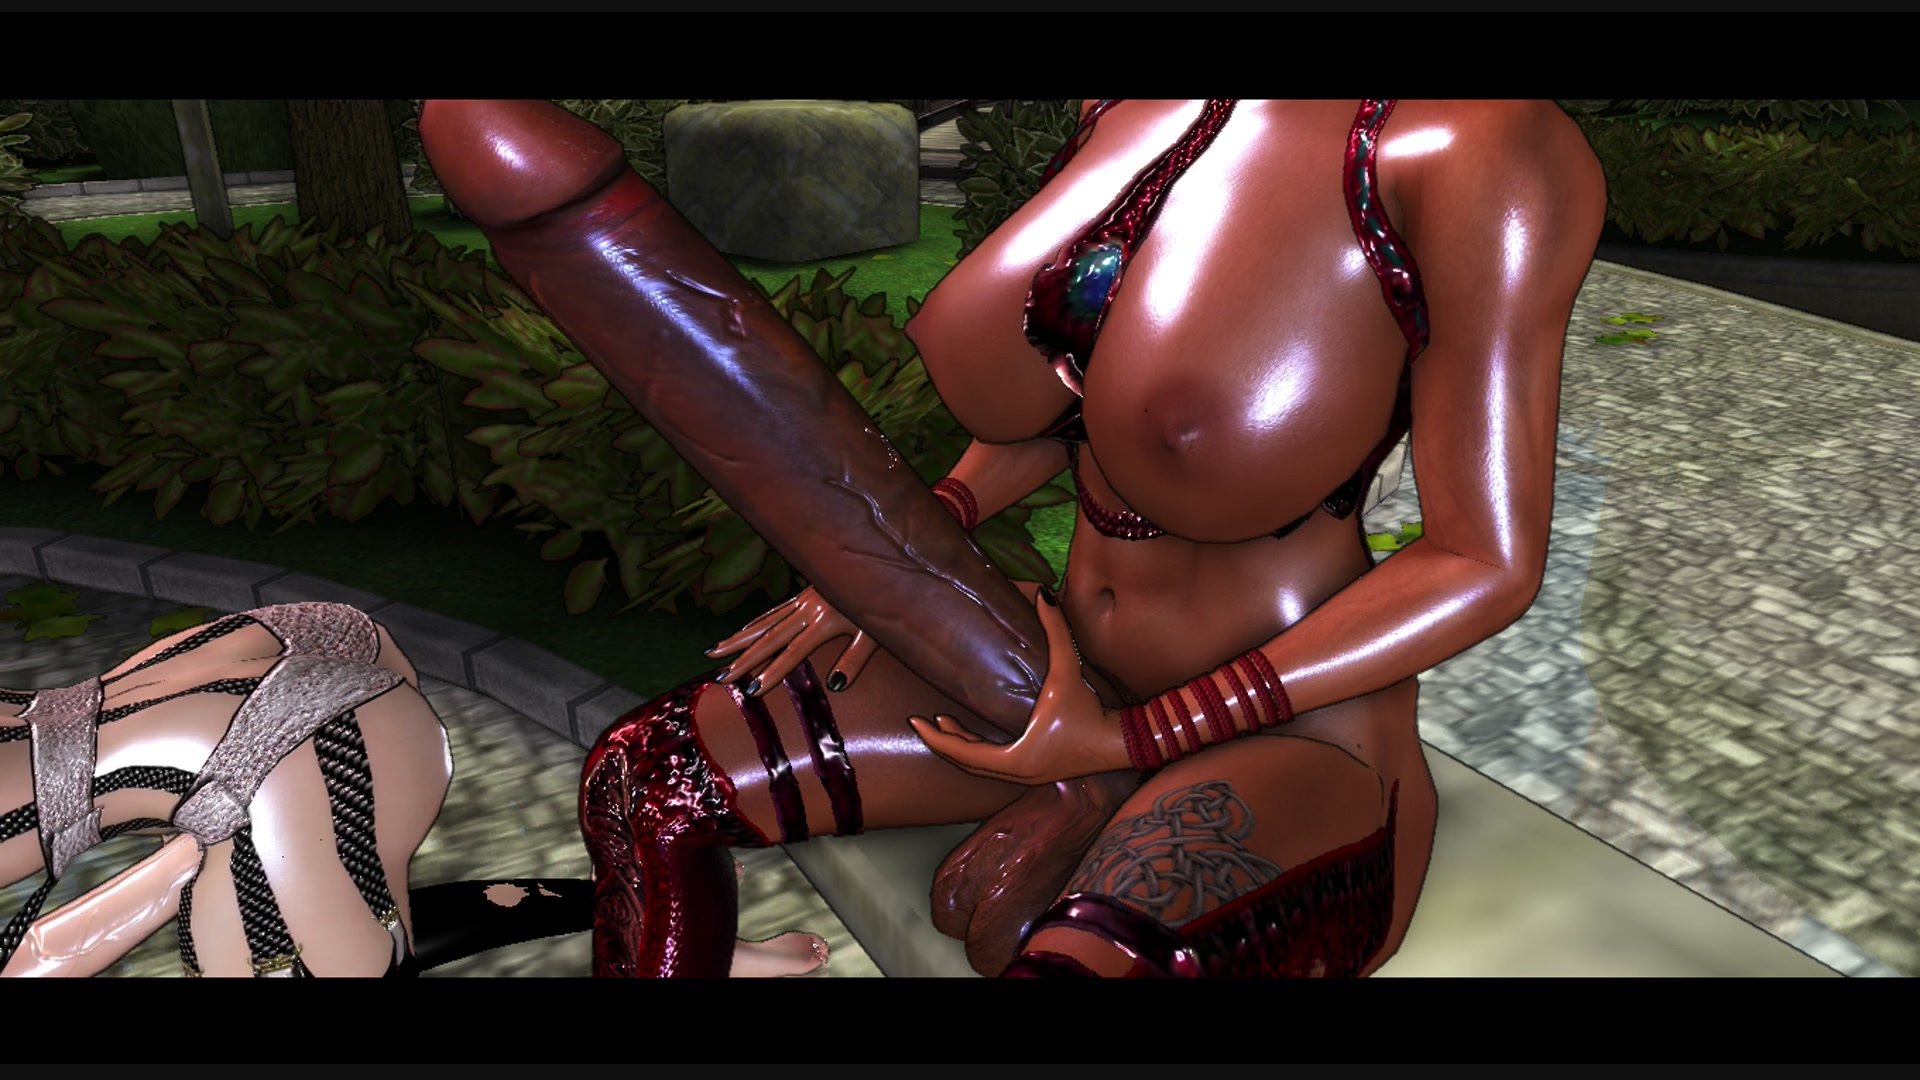 3d futanaria cartoon monster sex porn pic